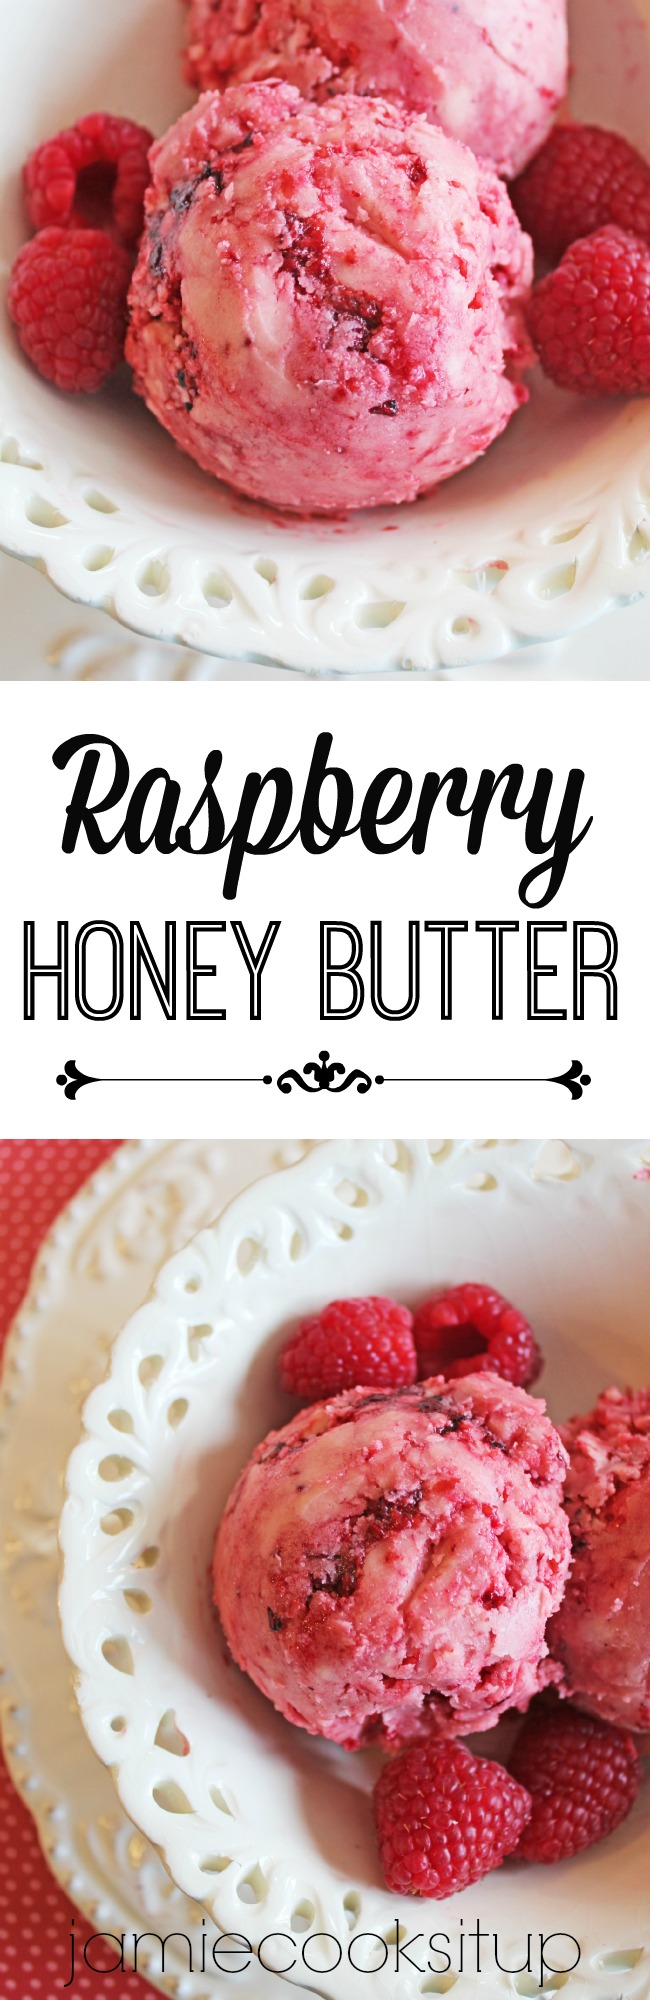 Raspberry Honey Butter from Jamie Cooks It Up!